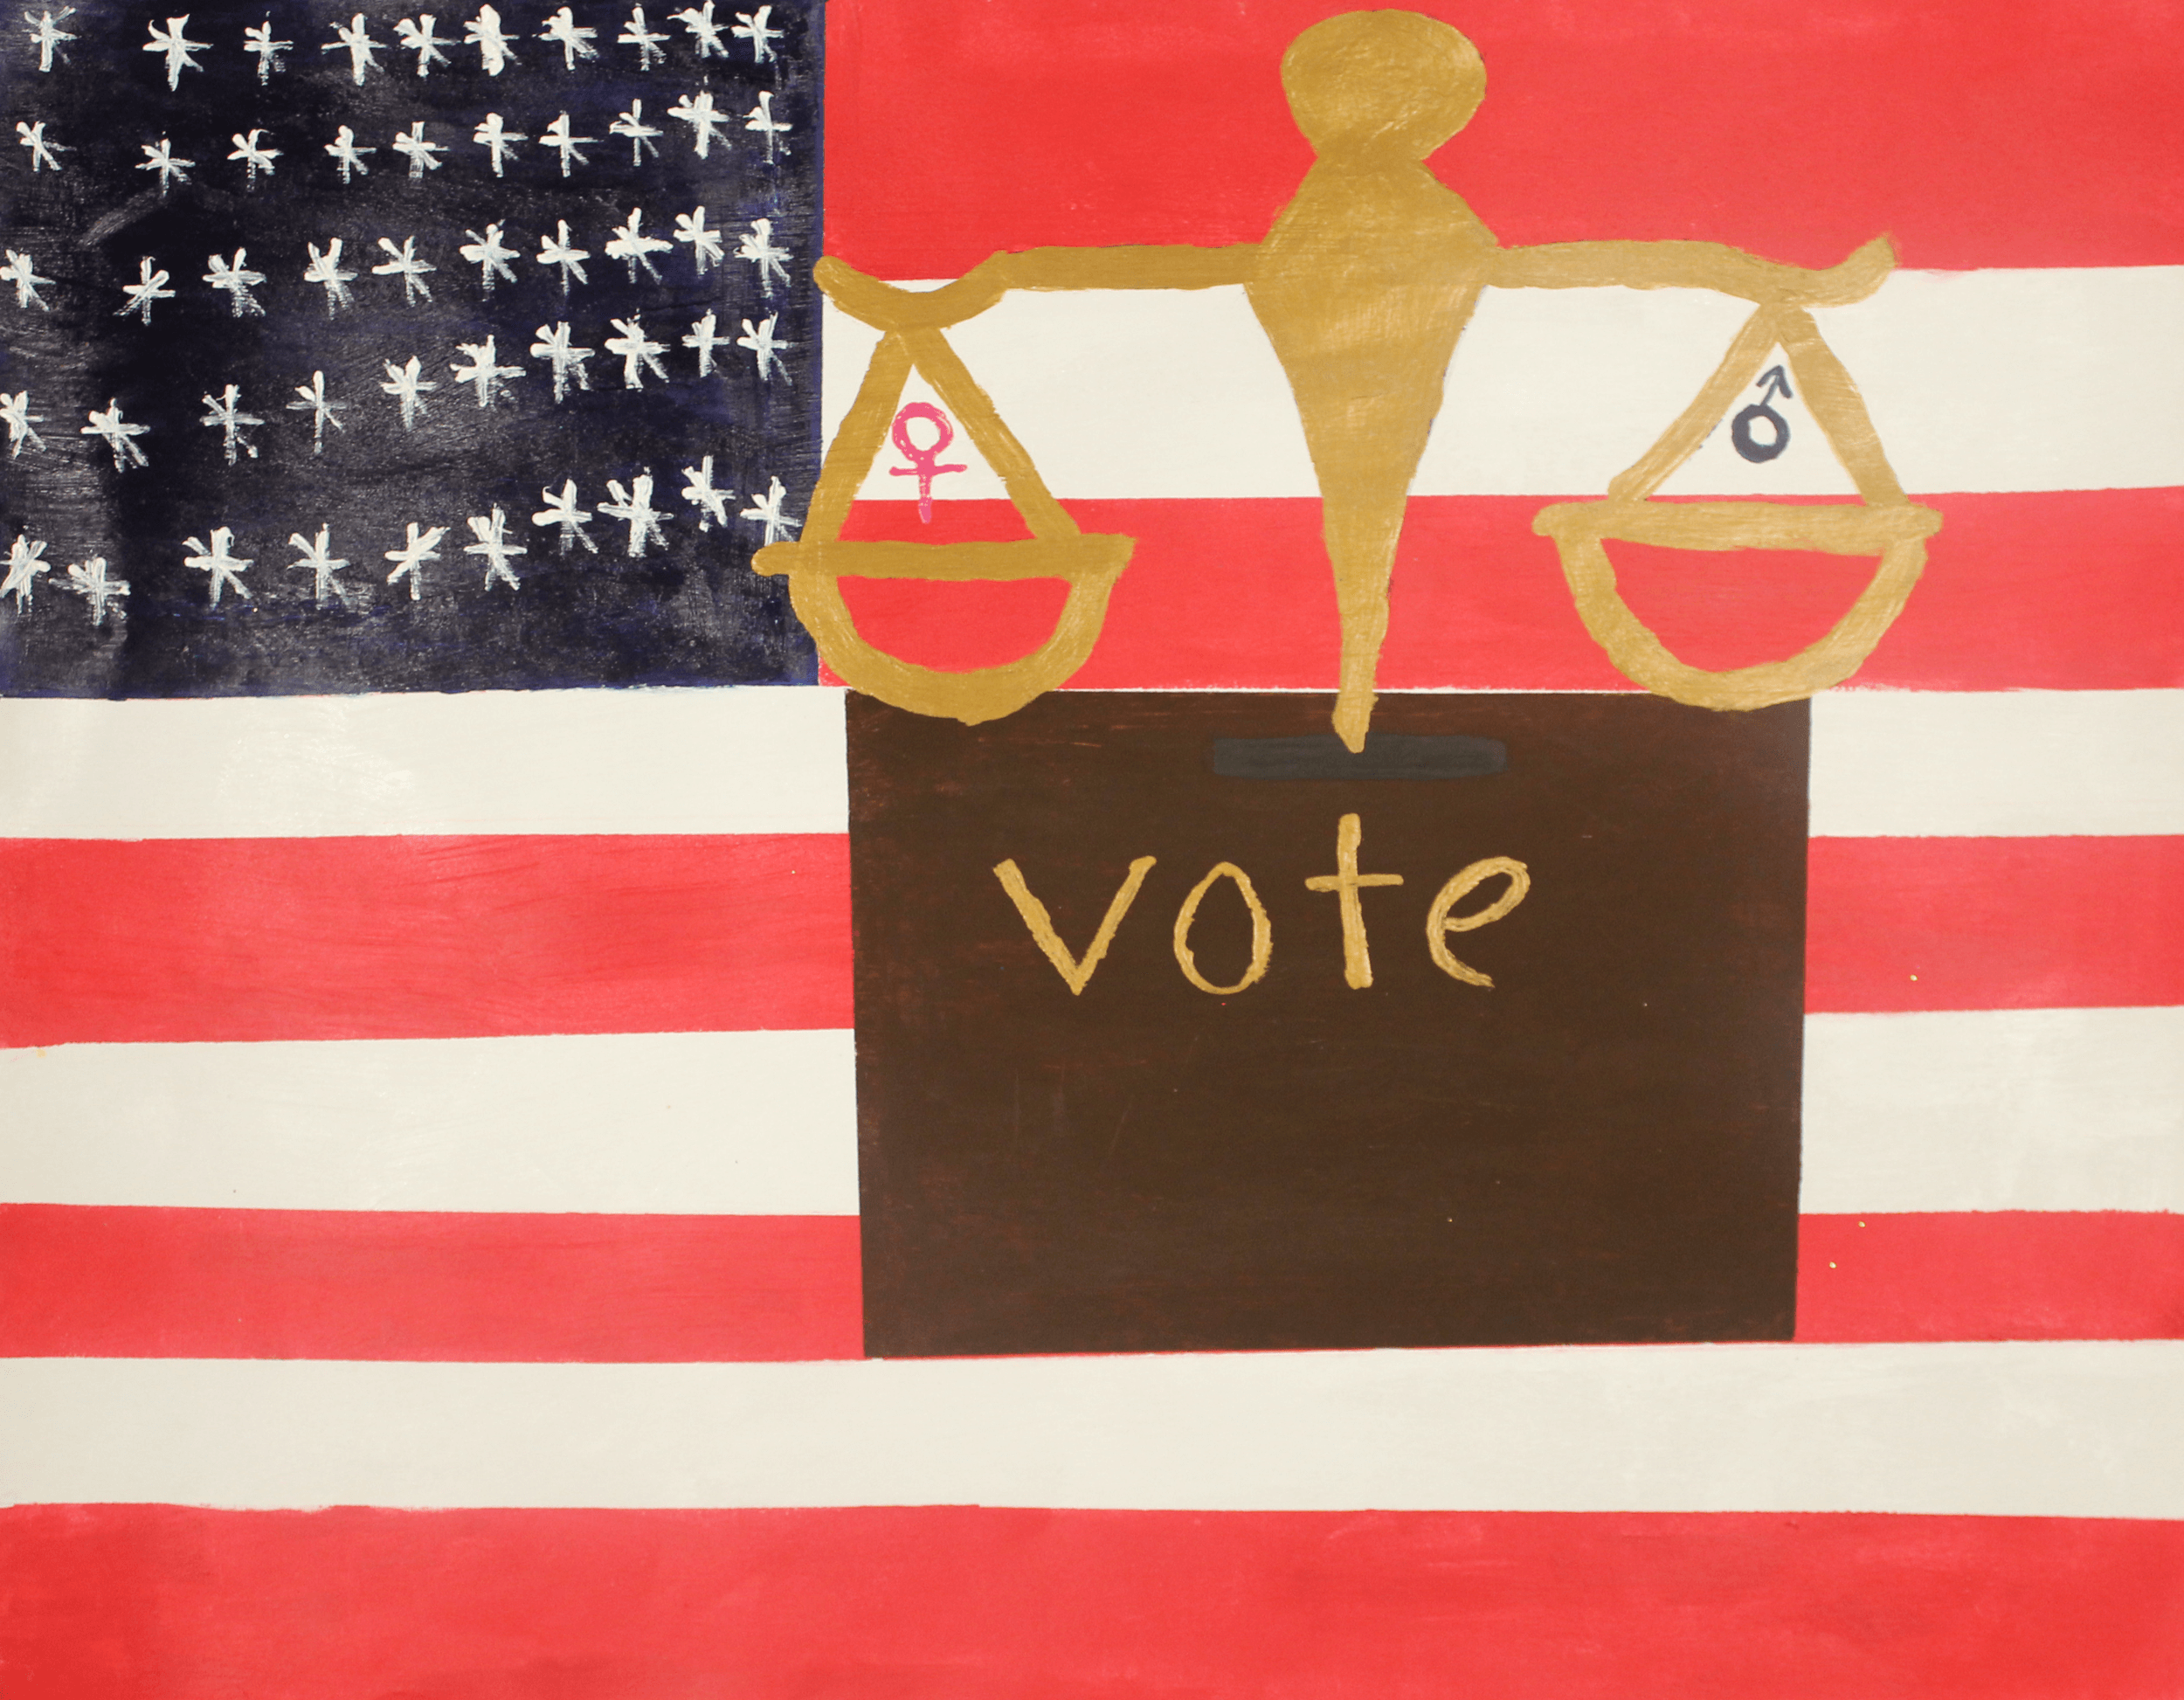 Balanced scales and the word Vote painted over an American Flag background